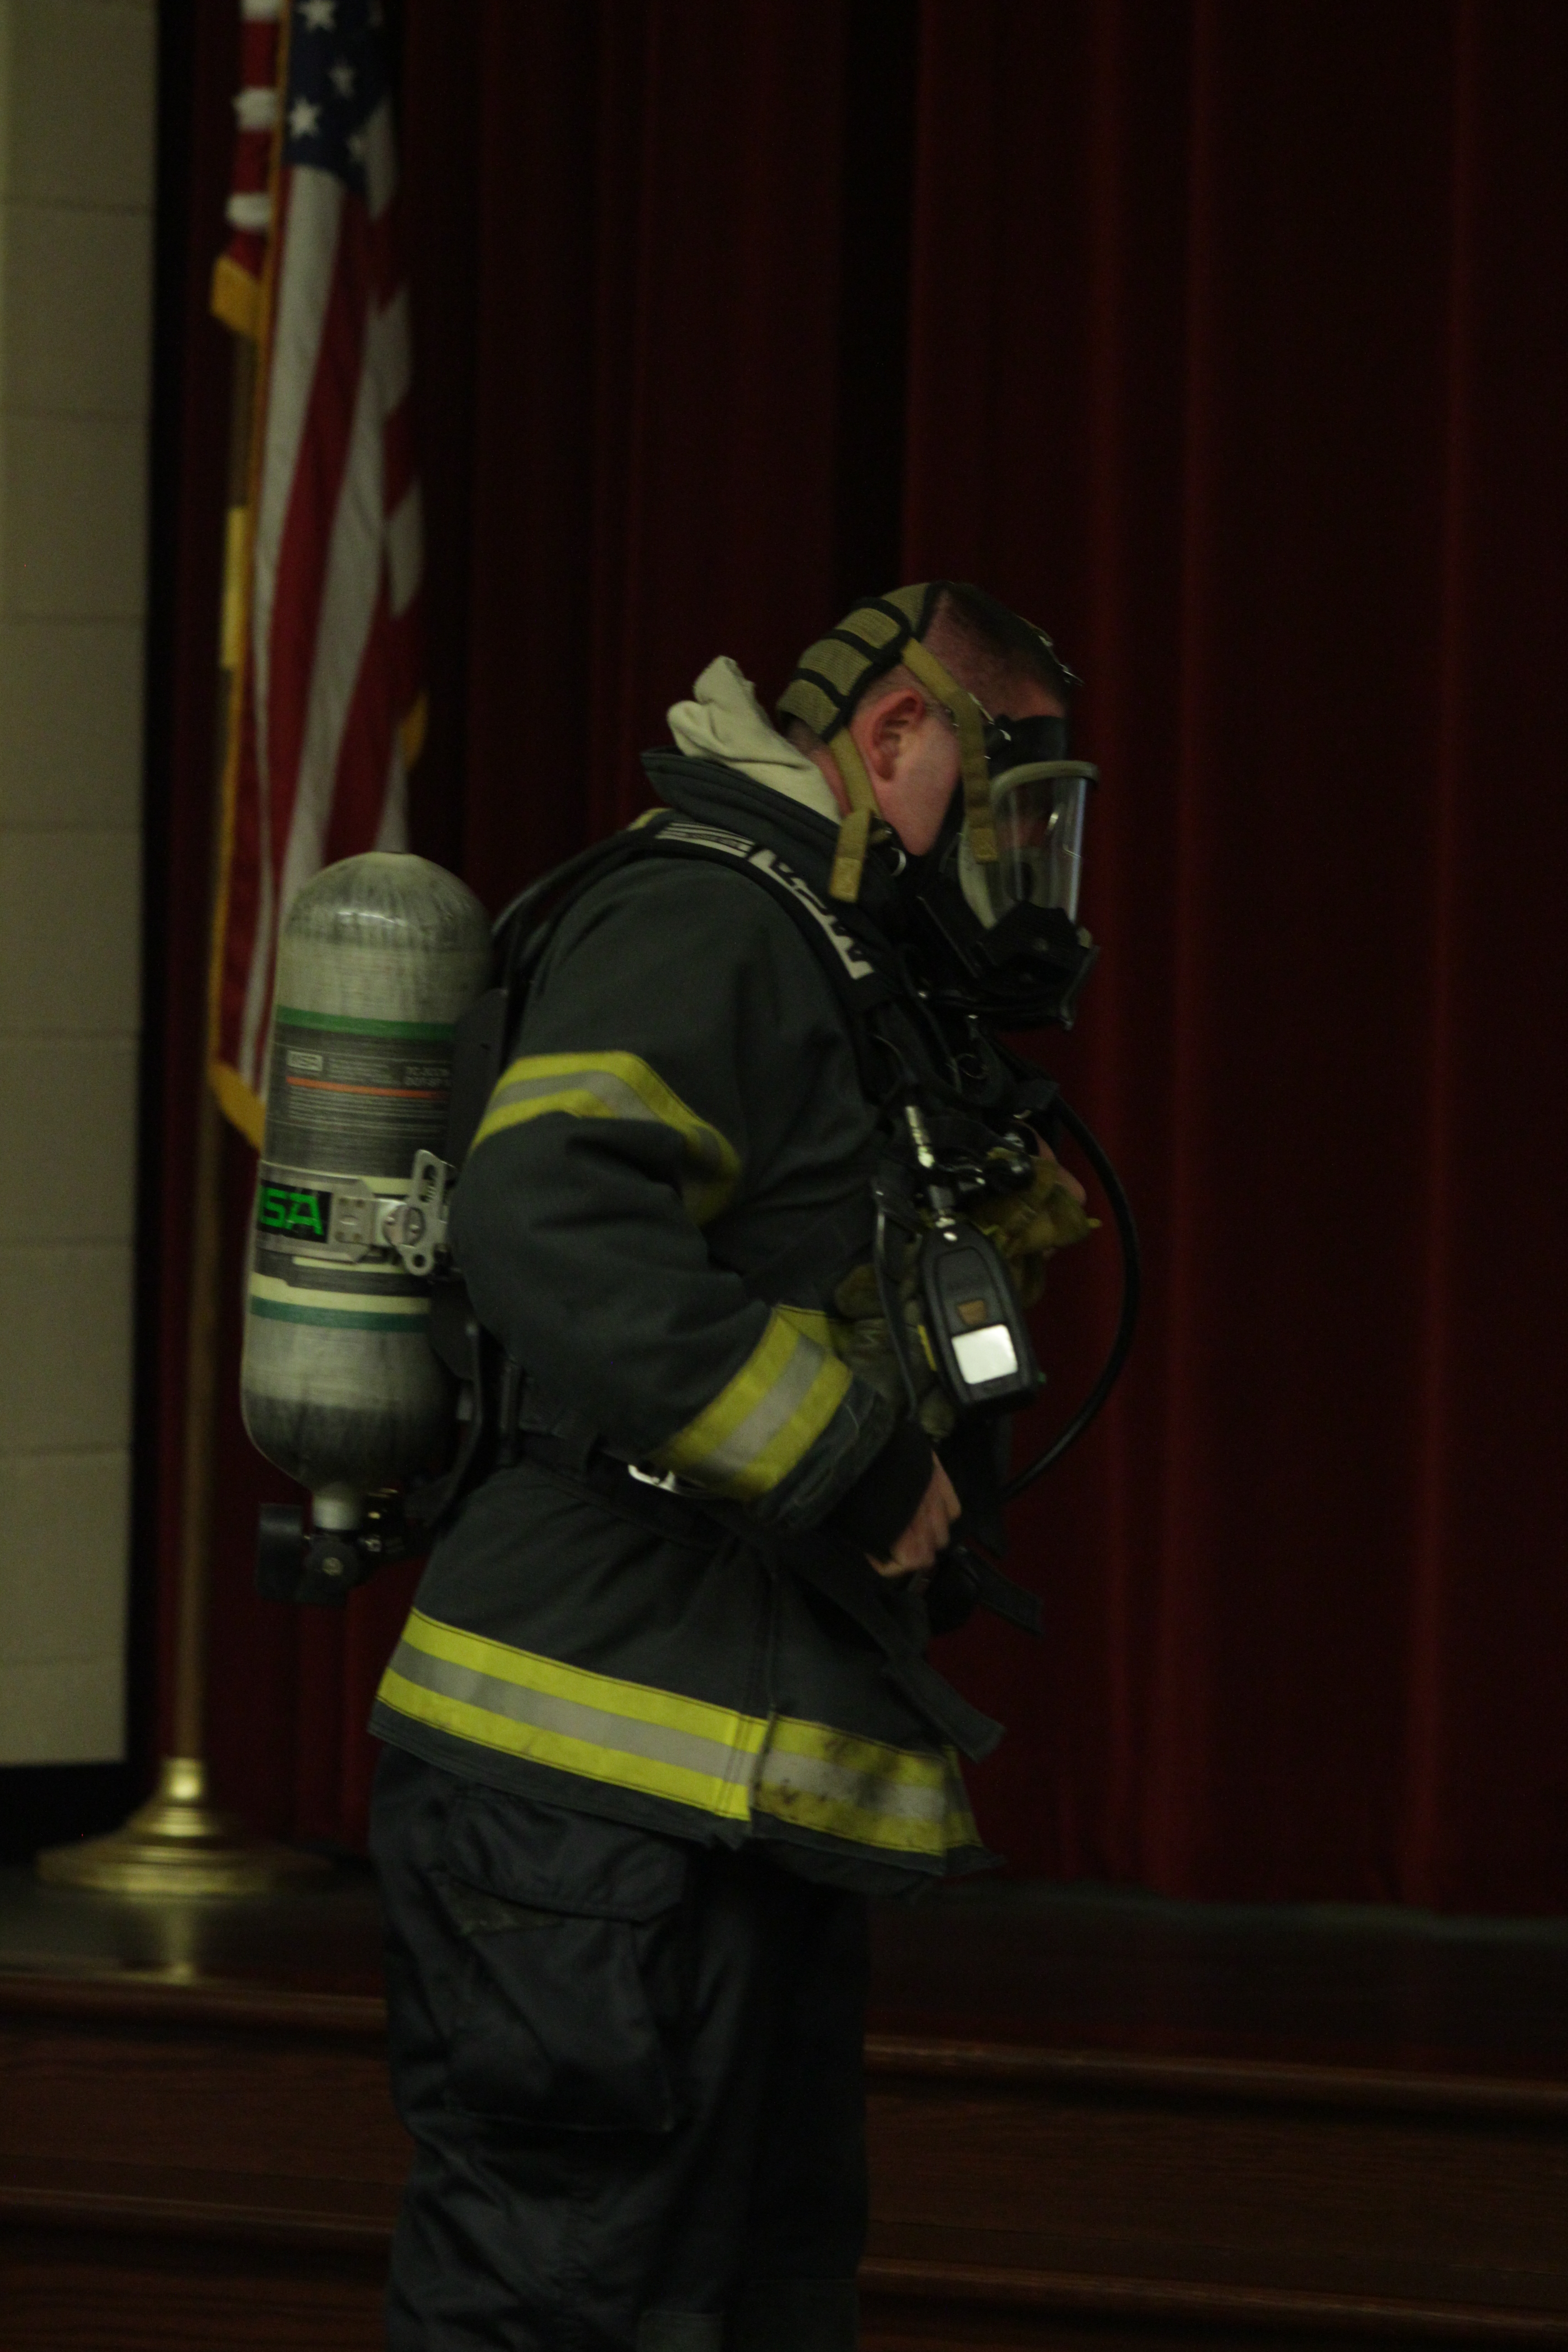 A firefighter shows his mask